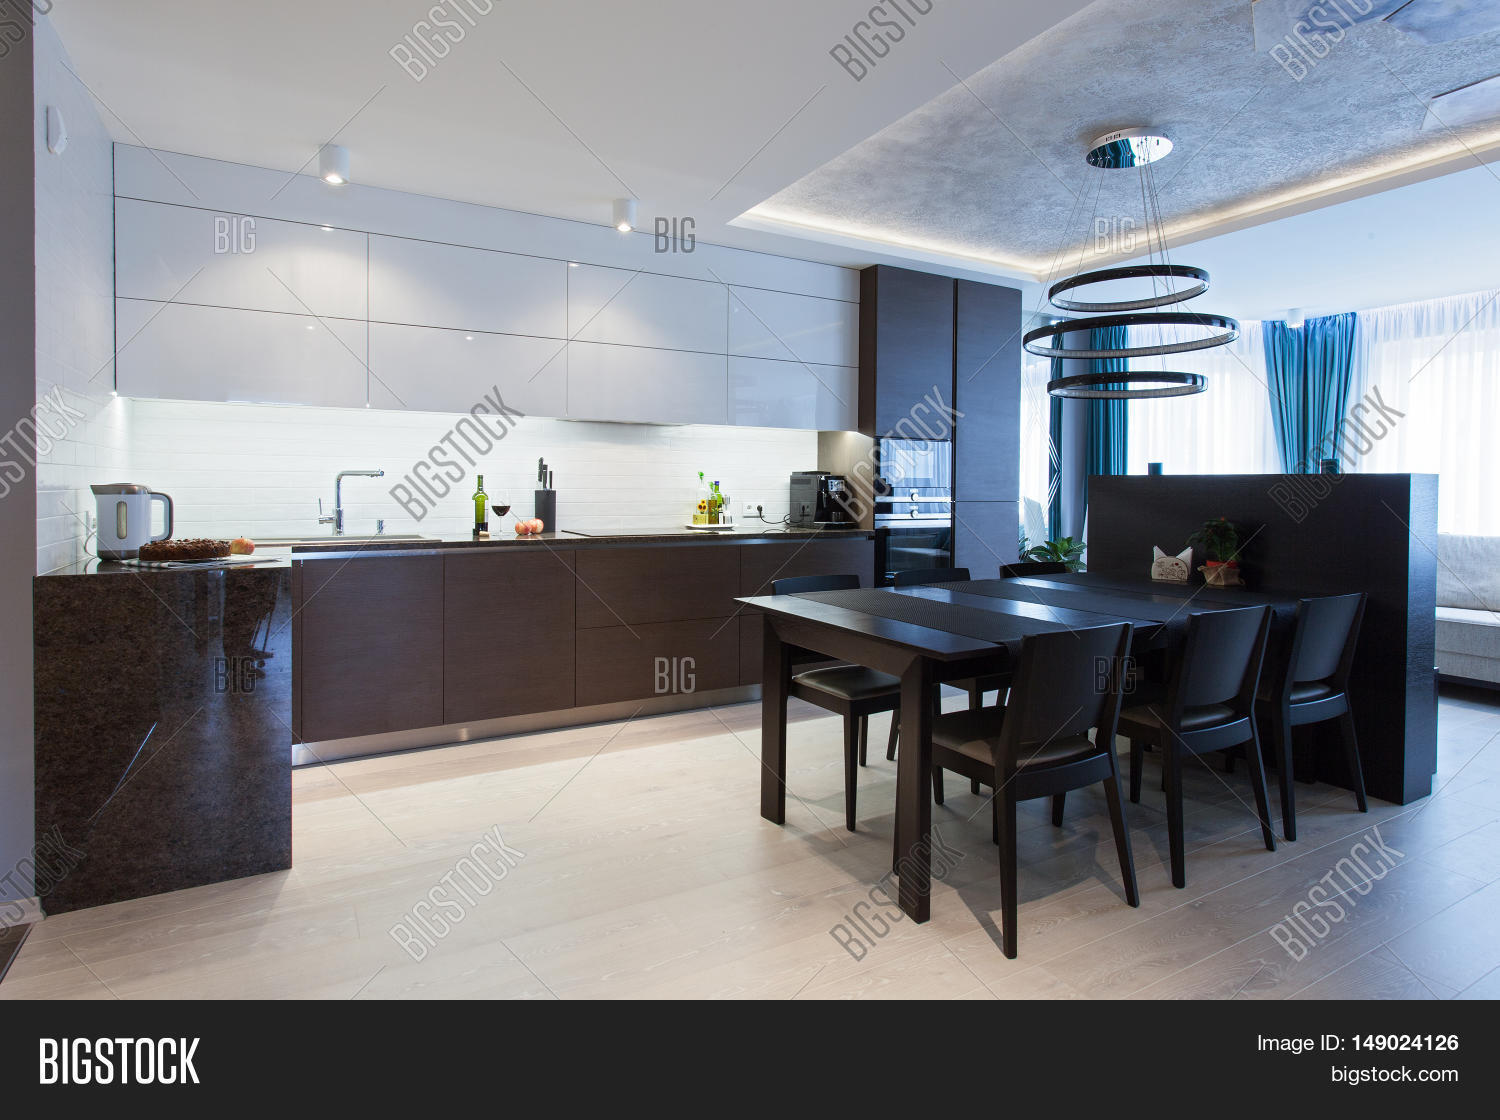 Interior high tech kitchen table image photo bigstock for High tech kitchen